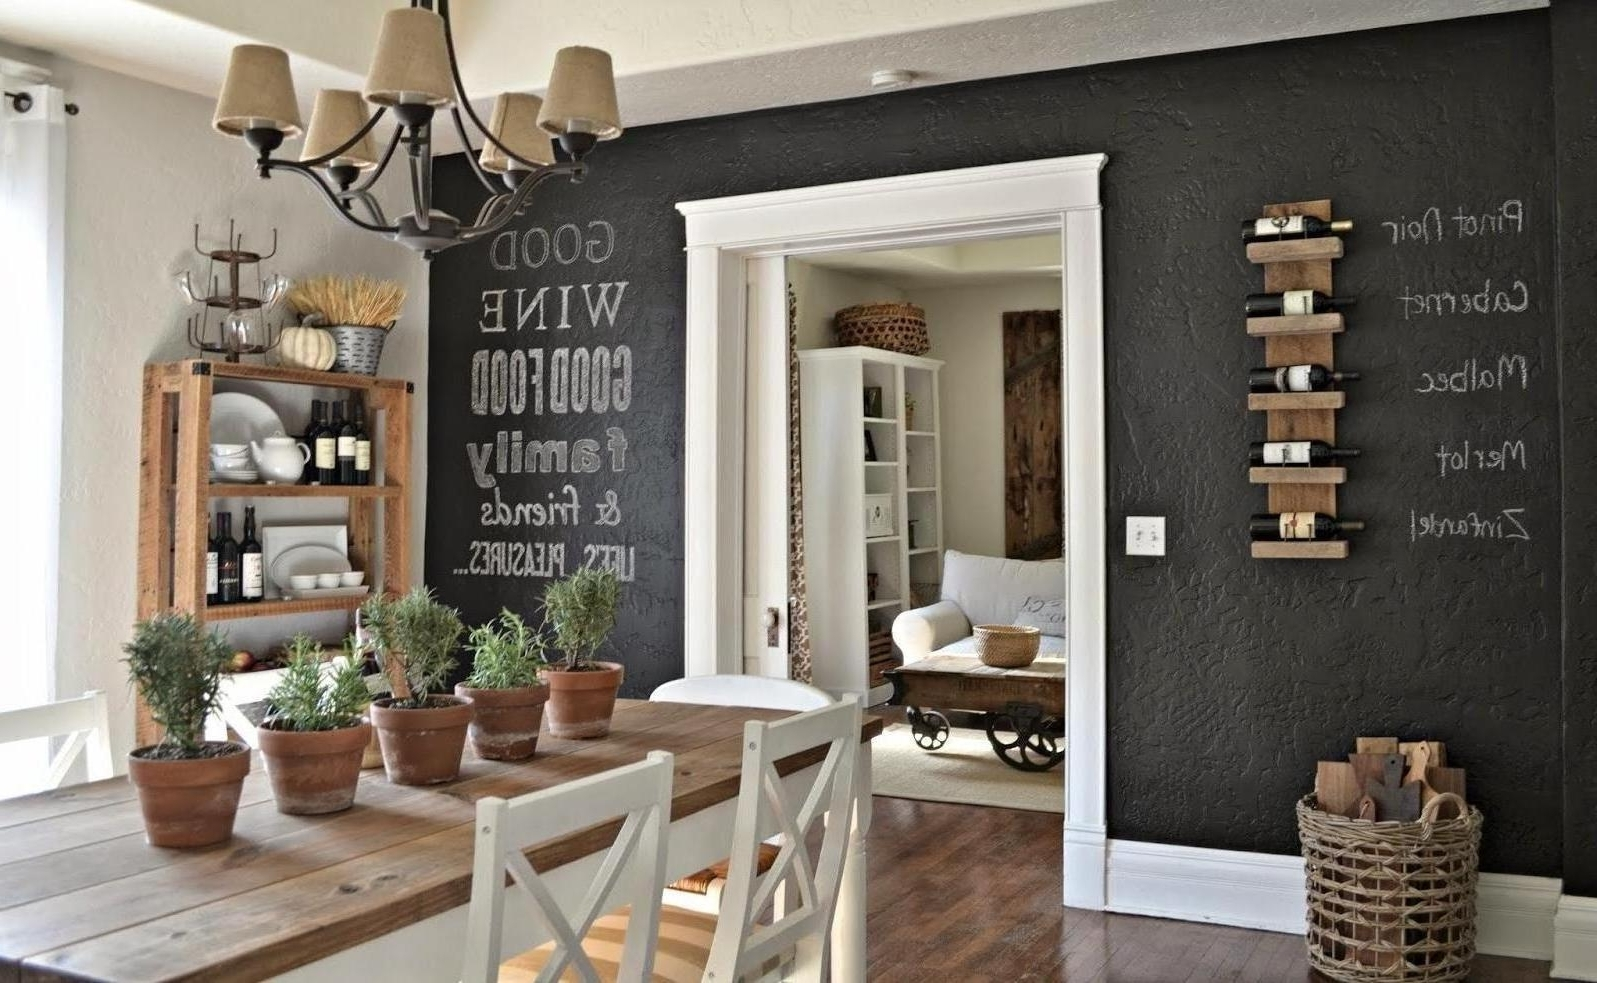 Creative Dining Room Wall Decor – Dining Room Wall Decor Concept Within Recent Dining Room Wall Accents (View 2 of 15)